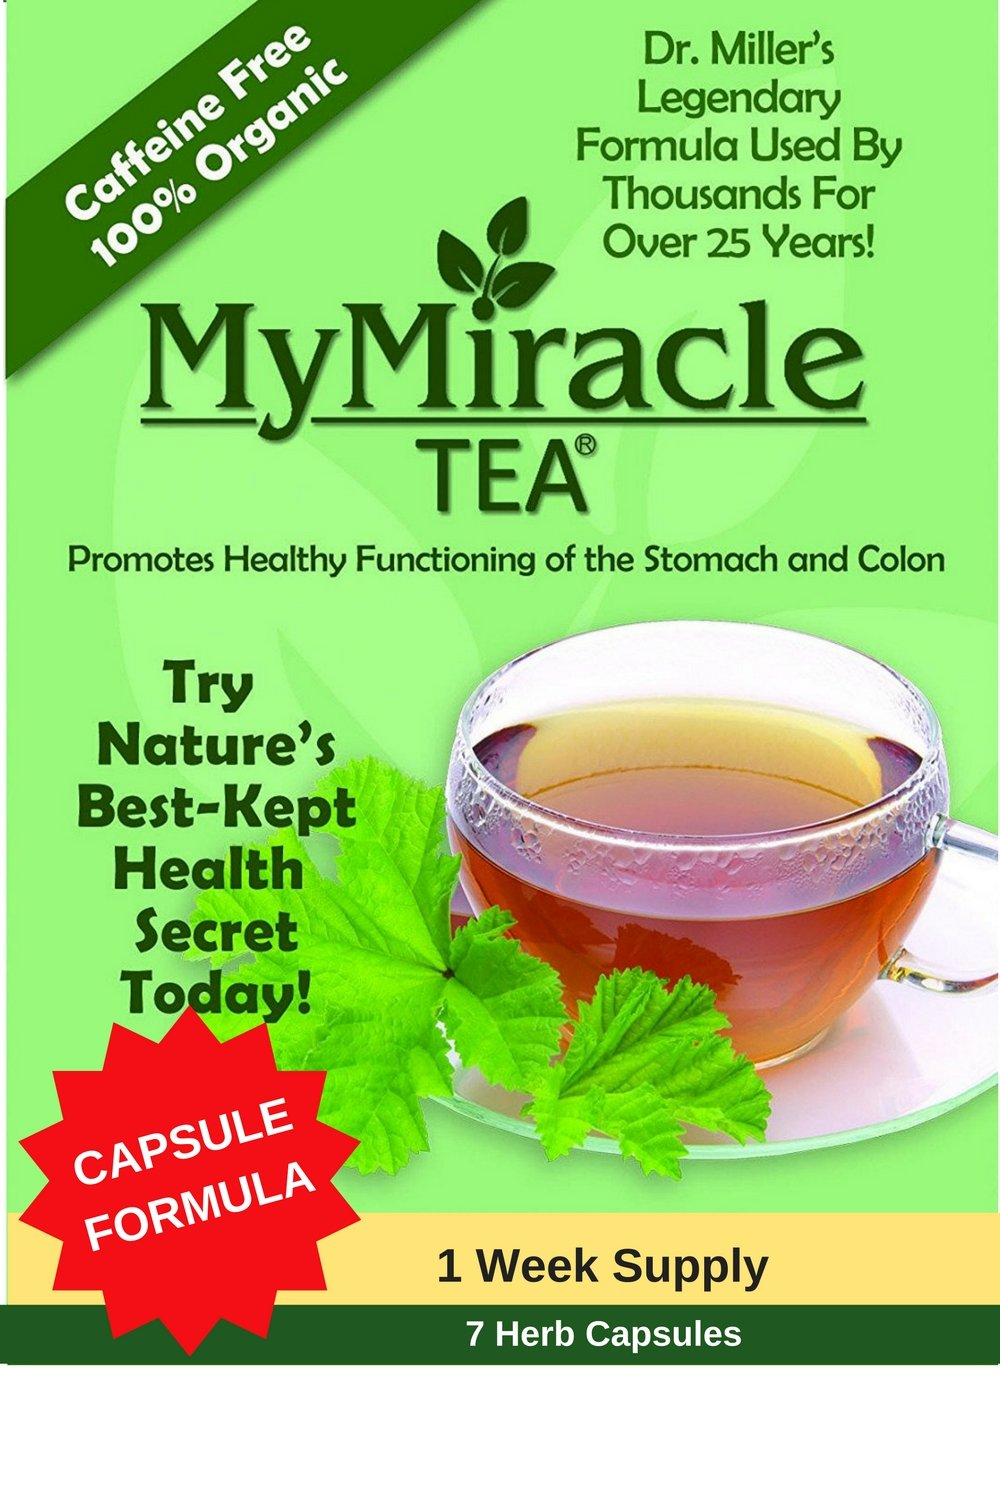 Amazon.com : Dr. Miller's Holy Tea | My Miracle Tea Constipation ...